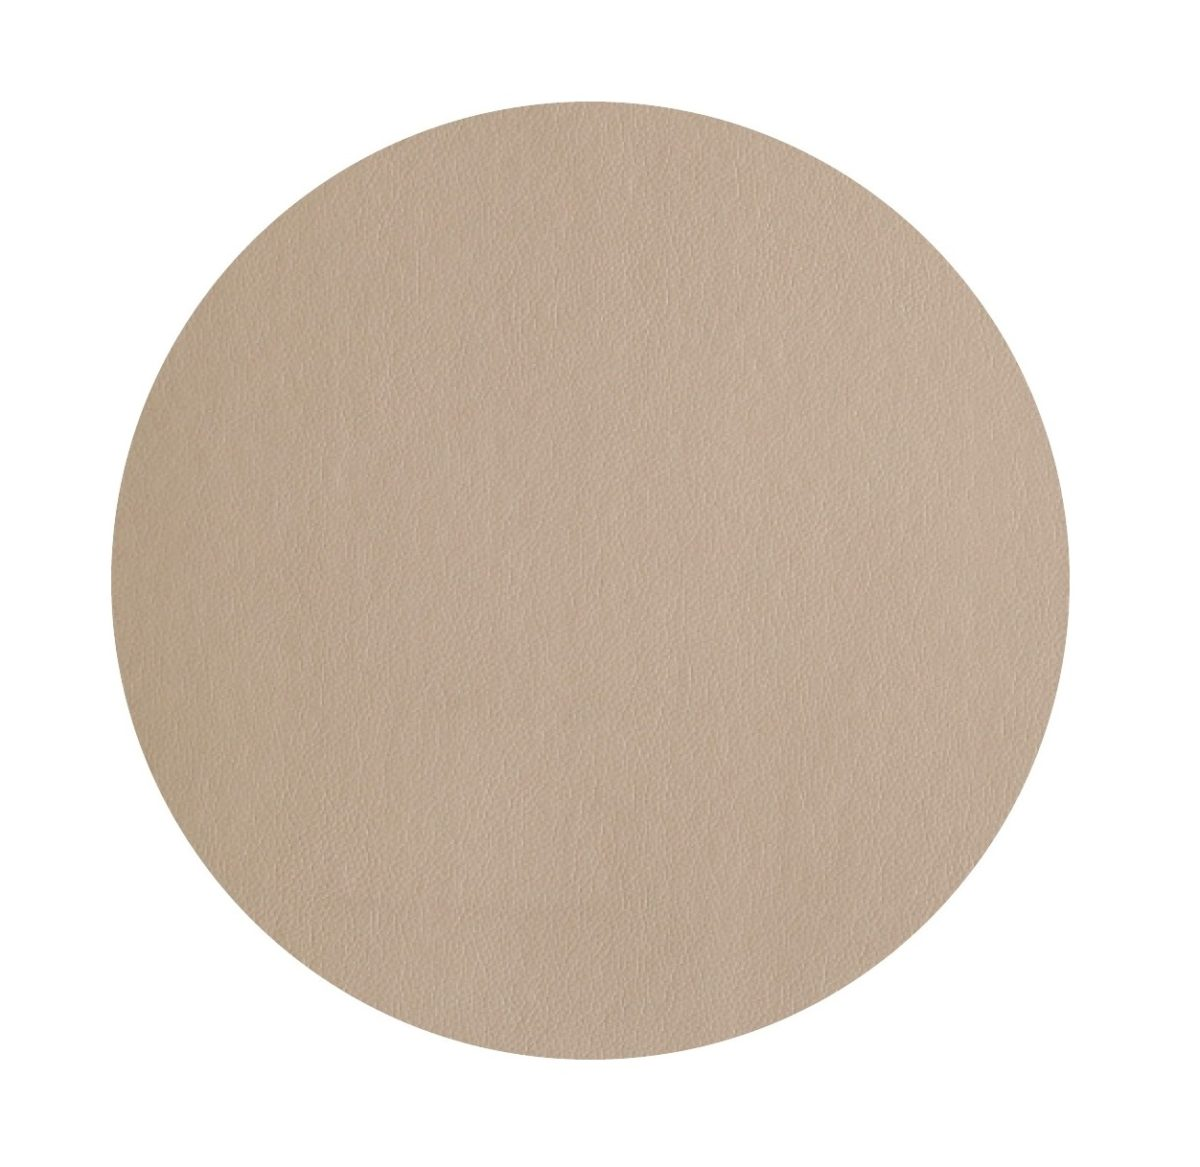 7851420 1200x1167 - Placemat round stone 38 cm (7851420)